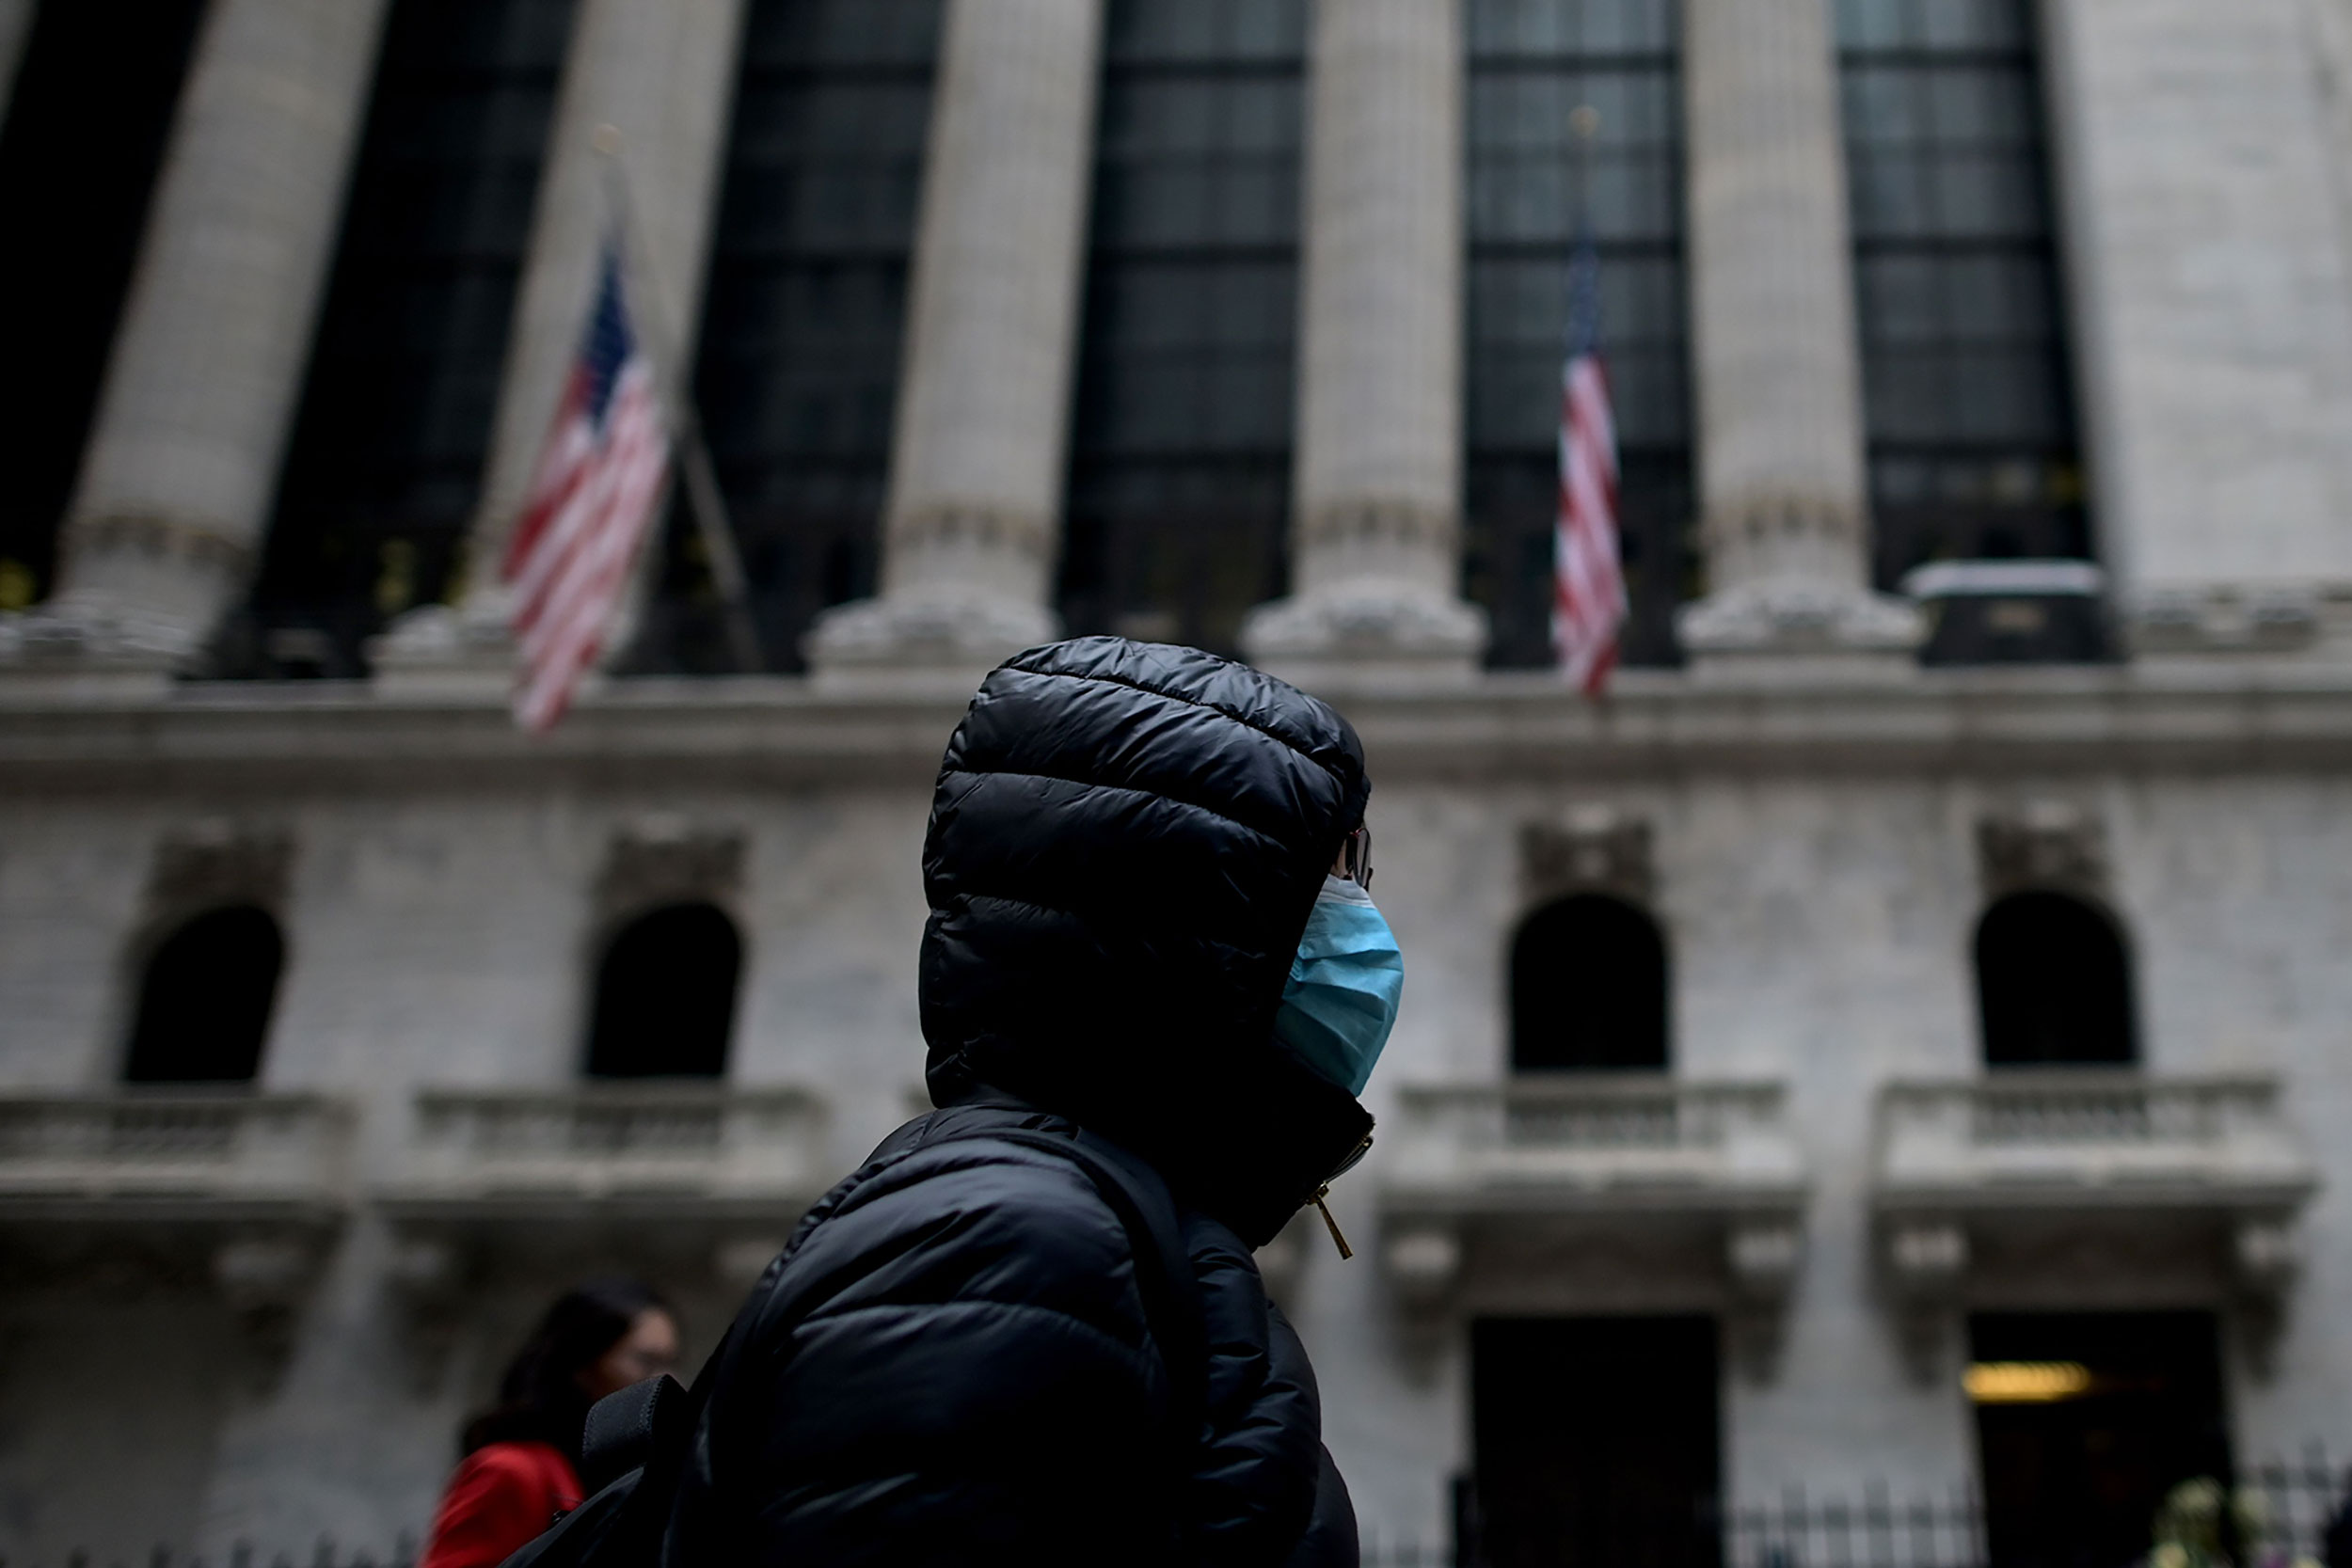 A person wearing a surgical mask walks past the New York Stock Exchange on February 3.